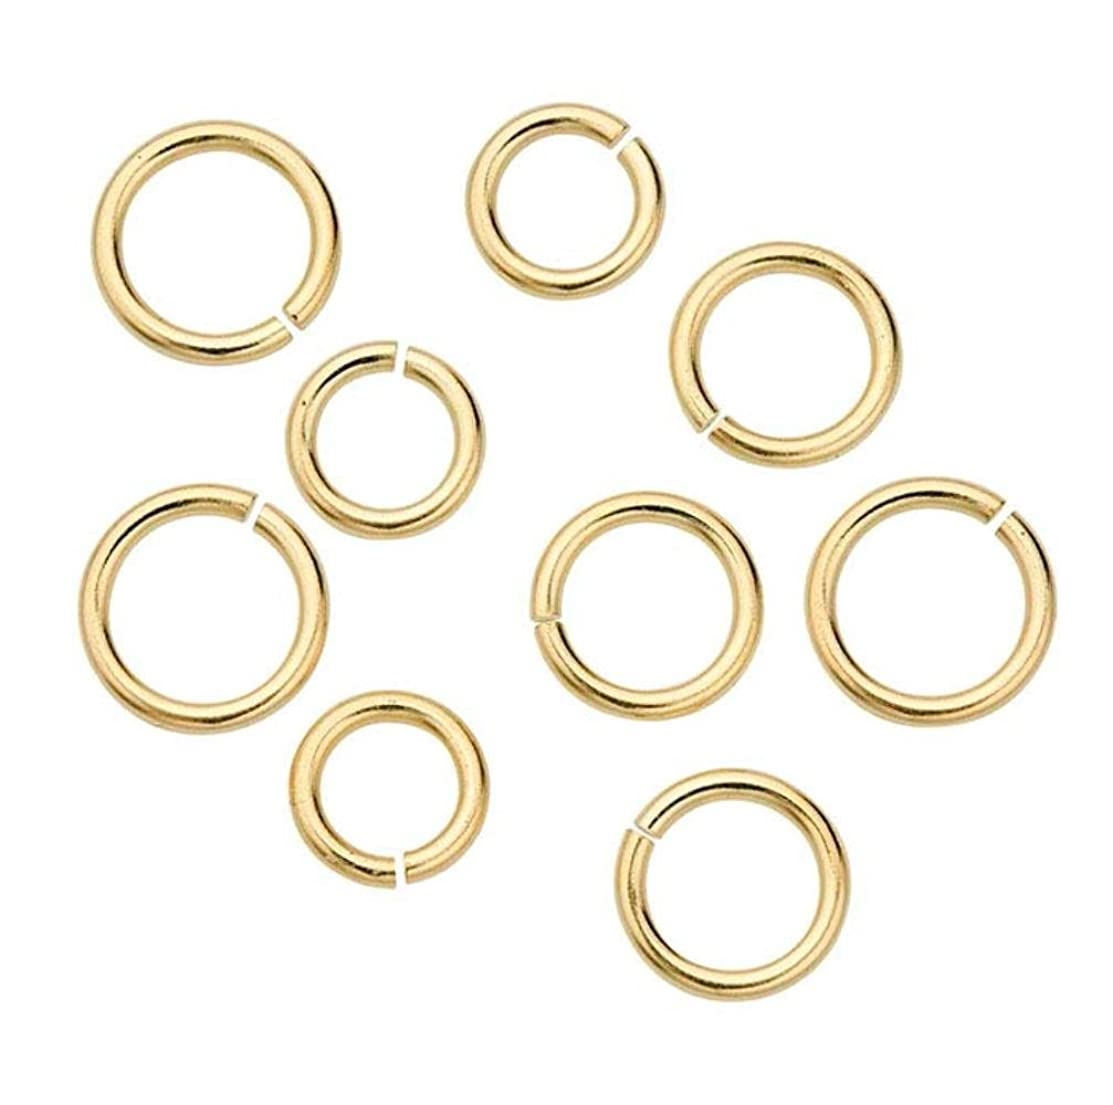 100pcs 14k Gold on Sterling Silver Open Jump Rings 4mm Small Connector (Wire ~21GA) for Jewelry Craft Making SS291-4